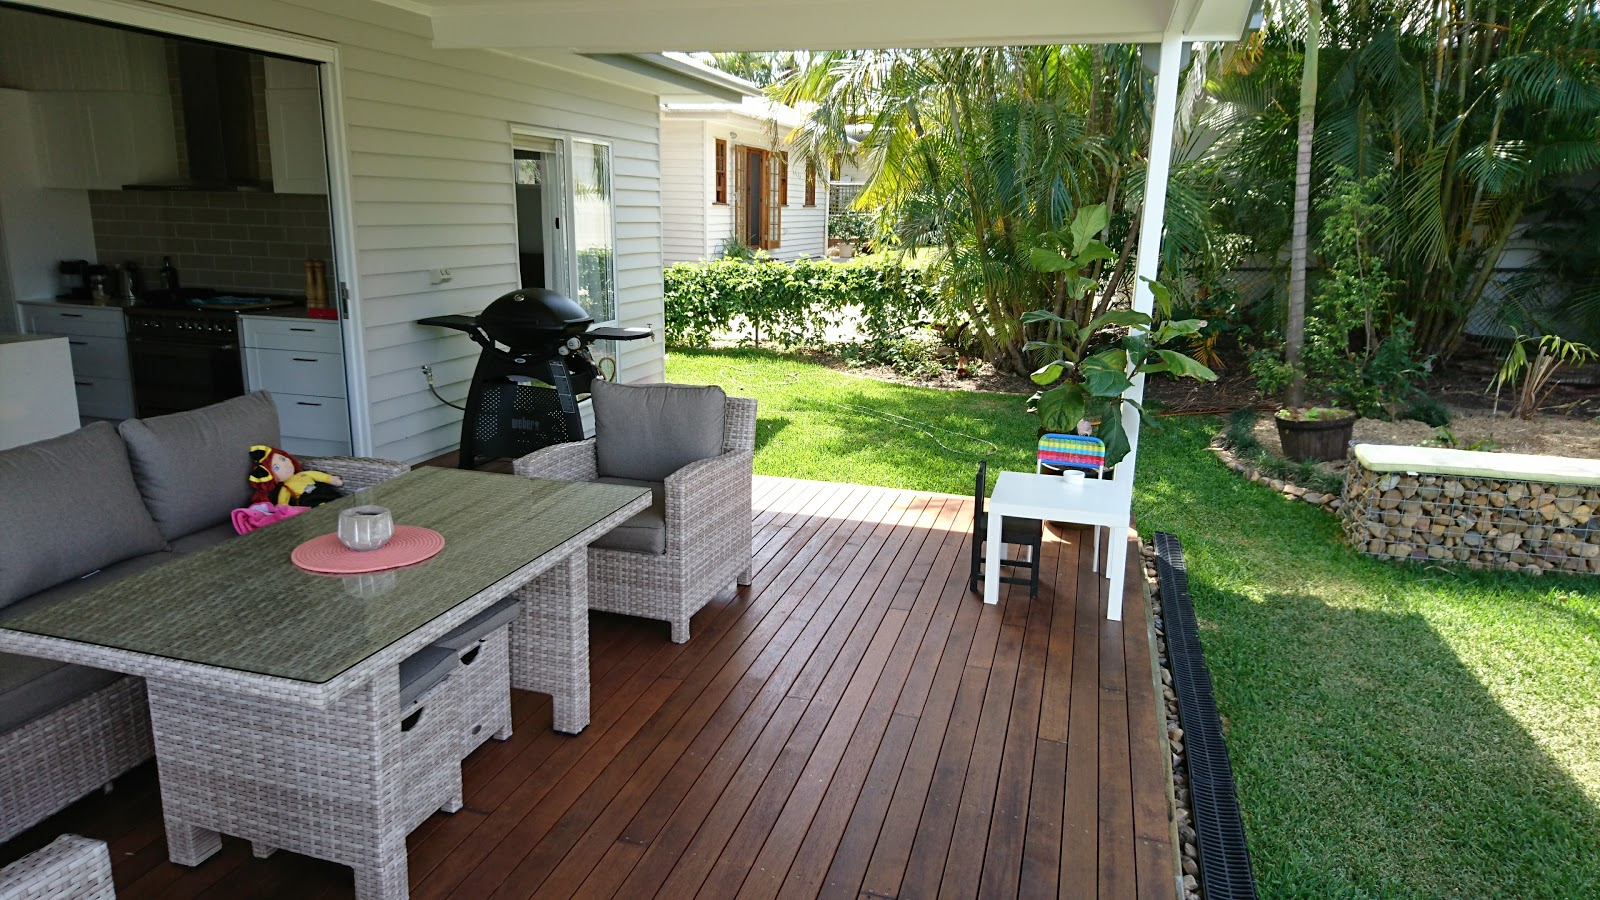 This deck is an entertainer's delight.